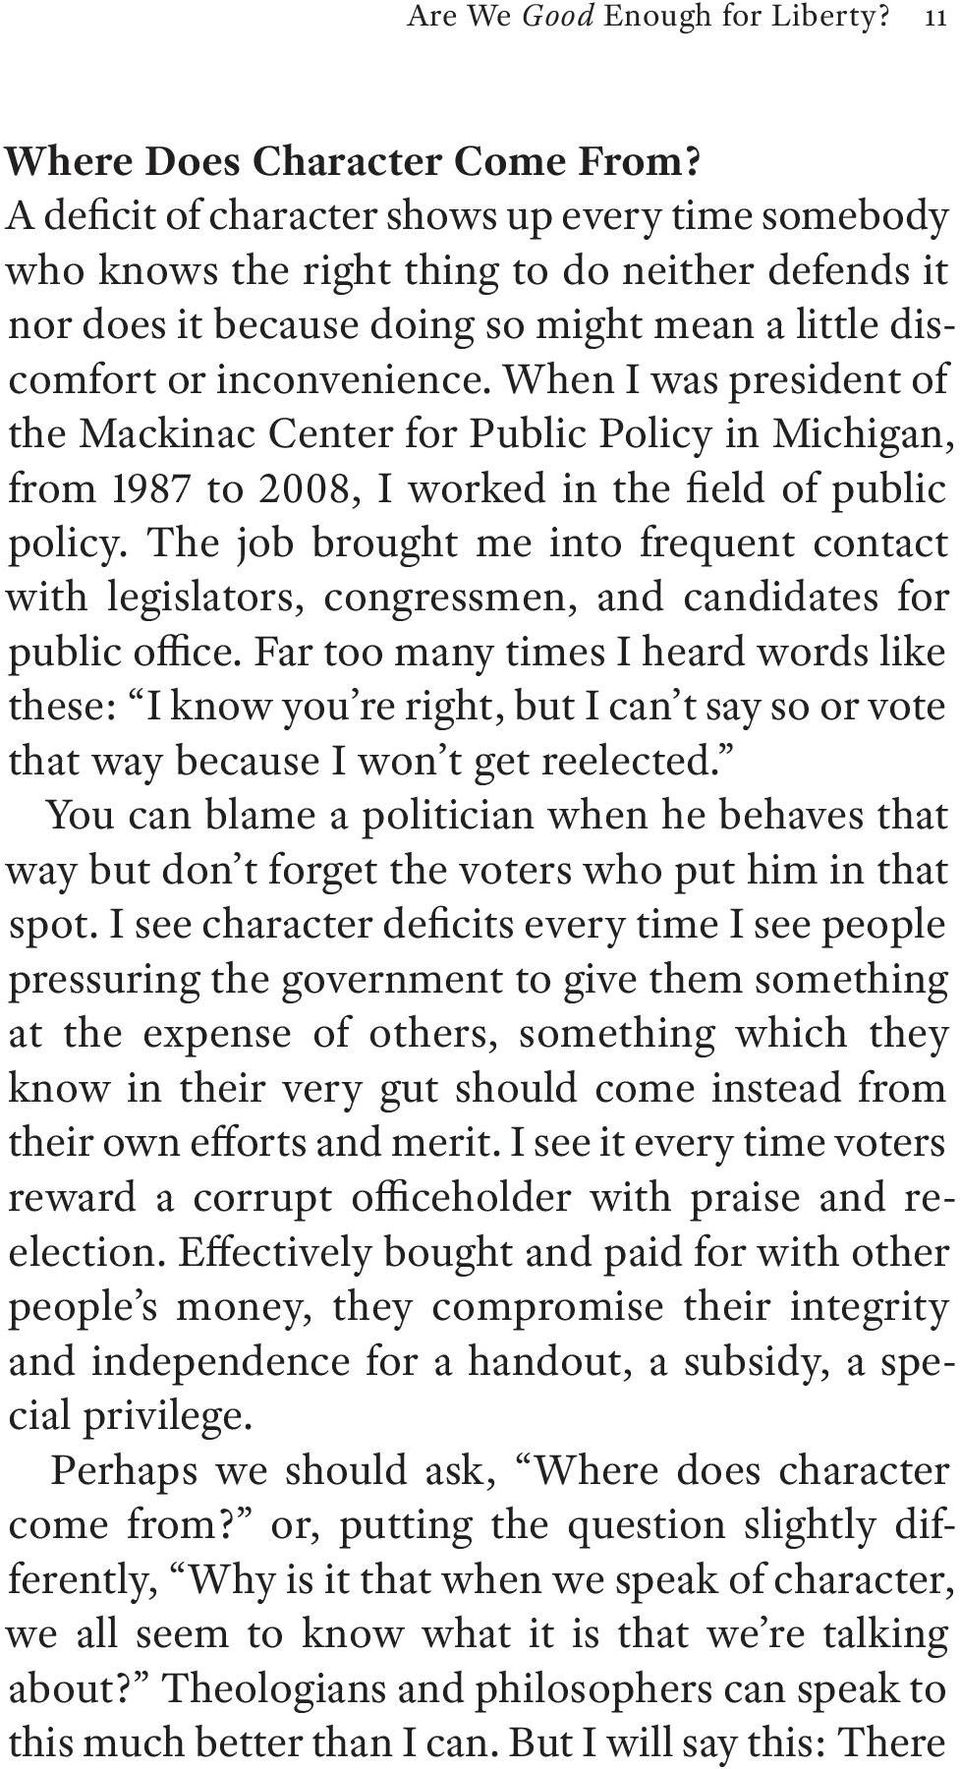 When I was president of the Mackinac Center for Public Policy in Michigan, from 1987 to 2008, I worked in the field of public policy.